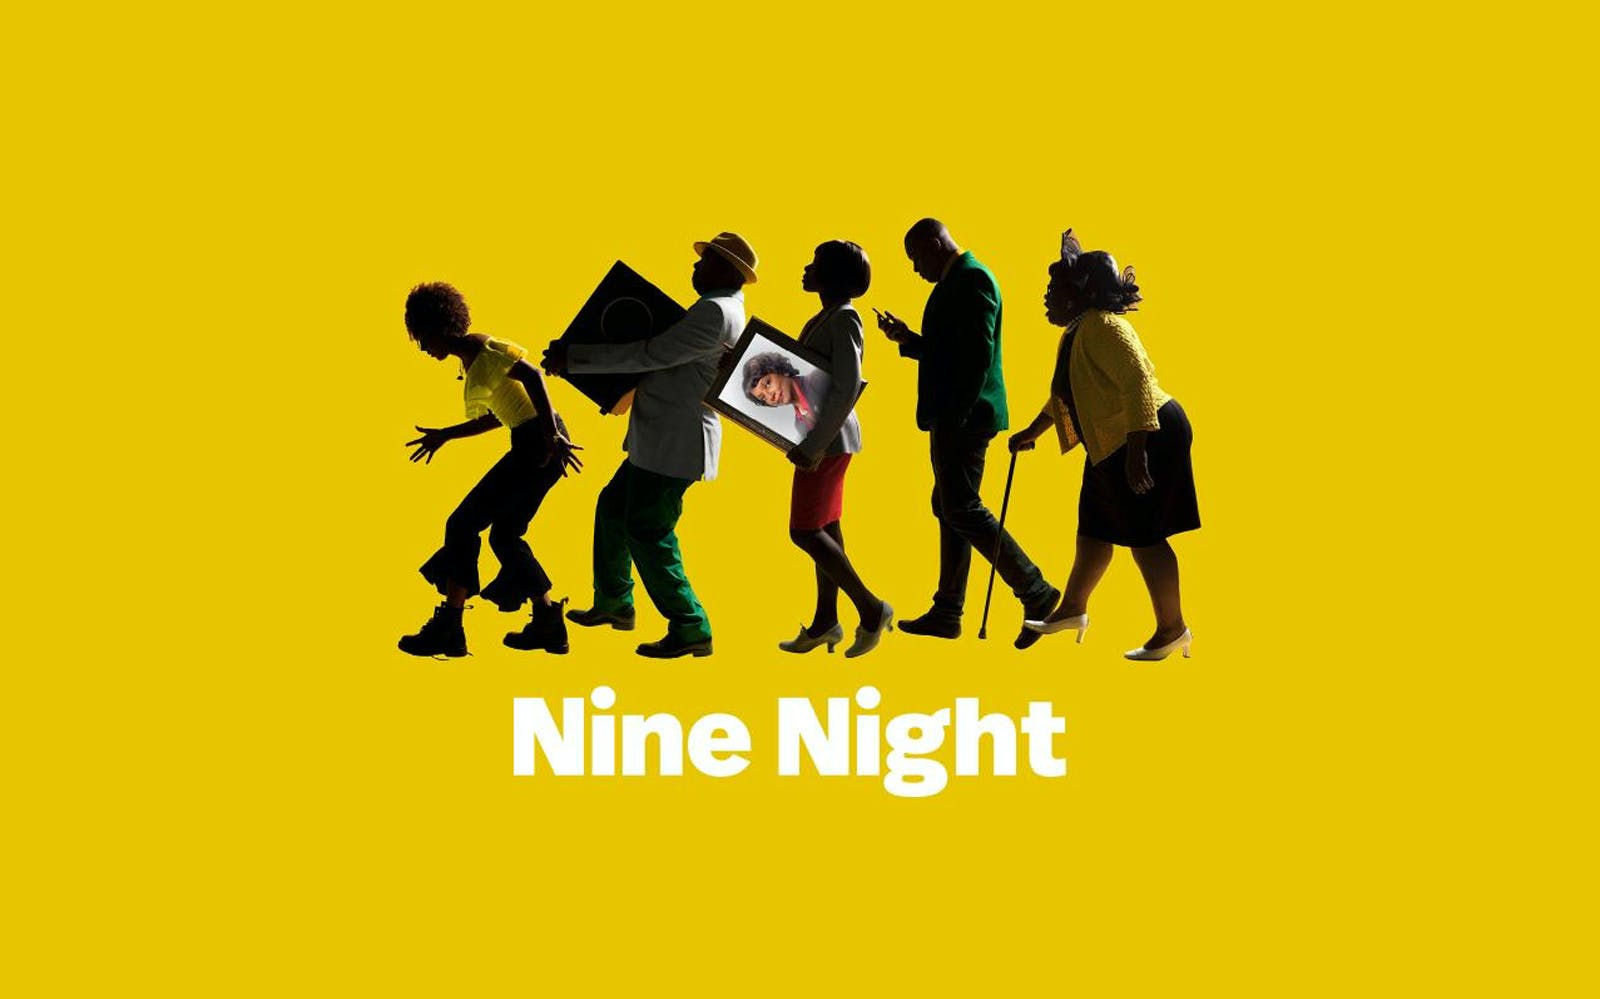 nine night-1